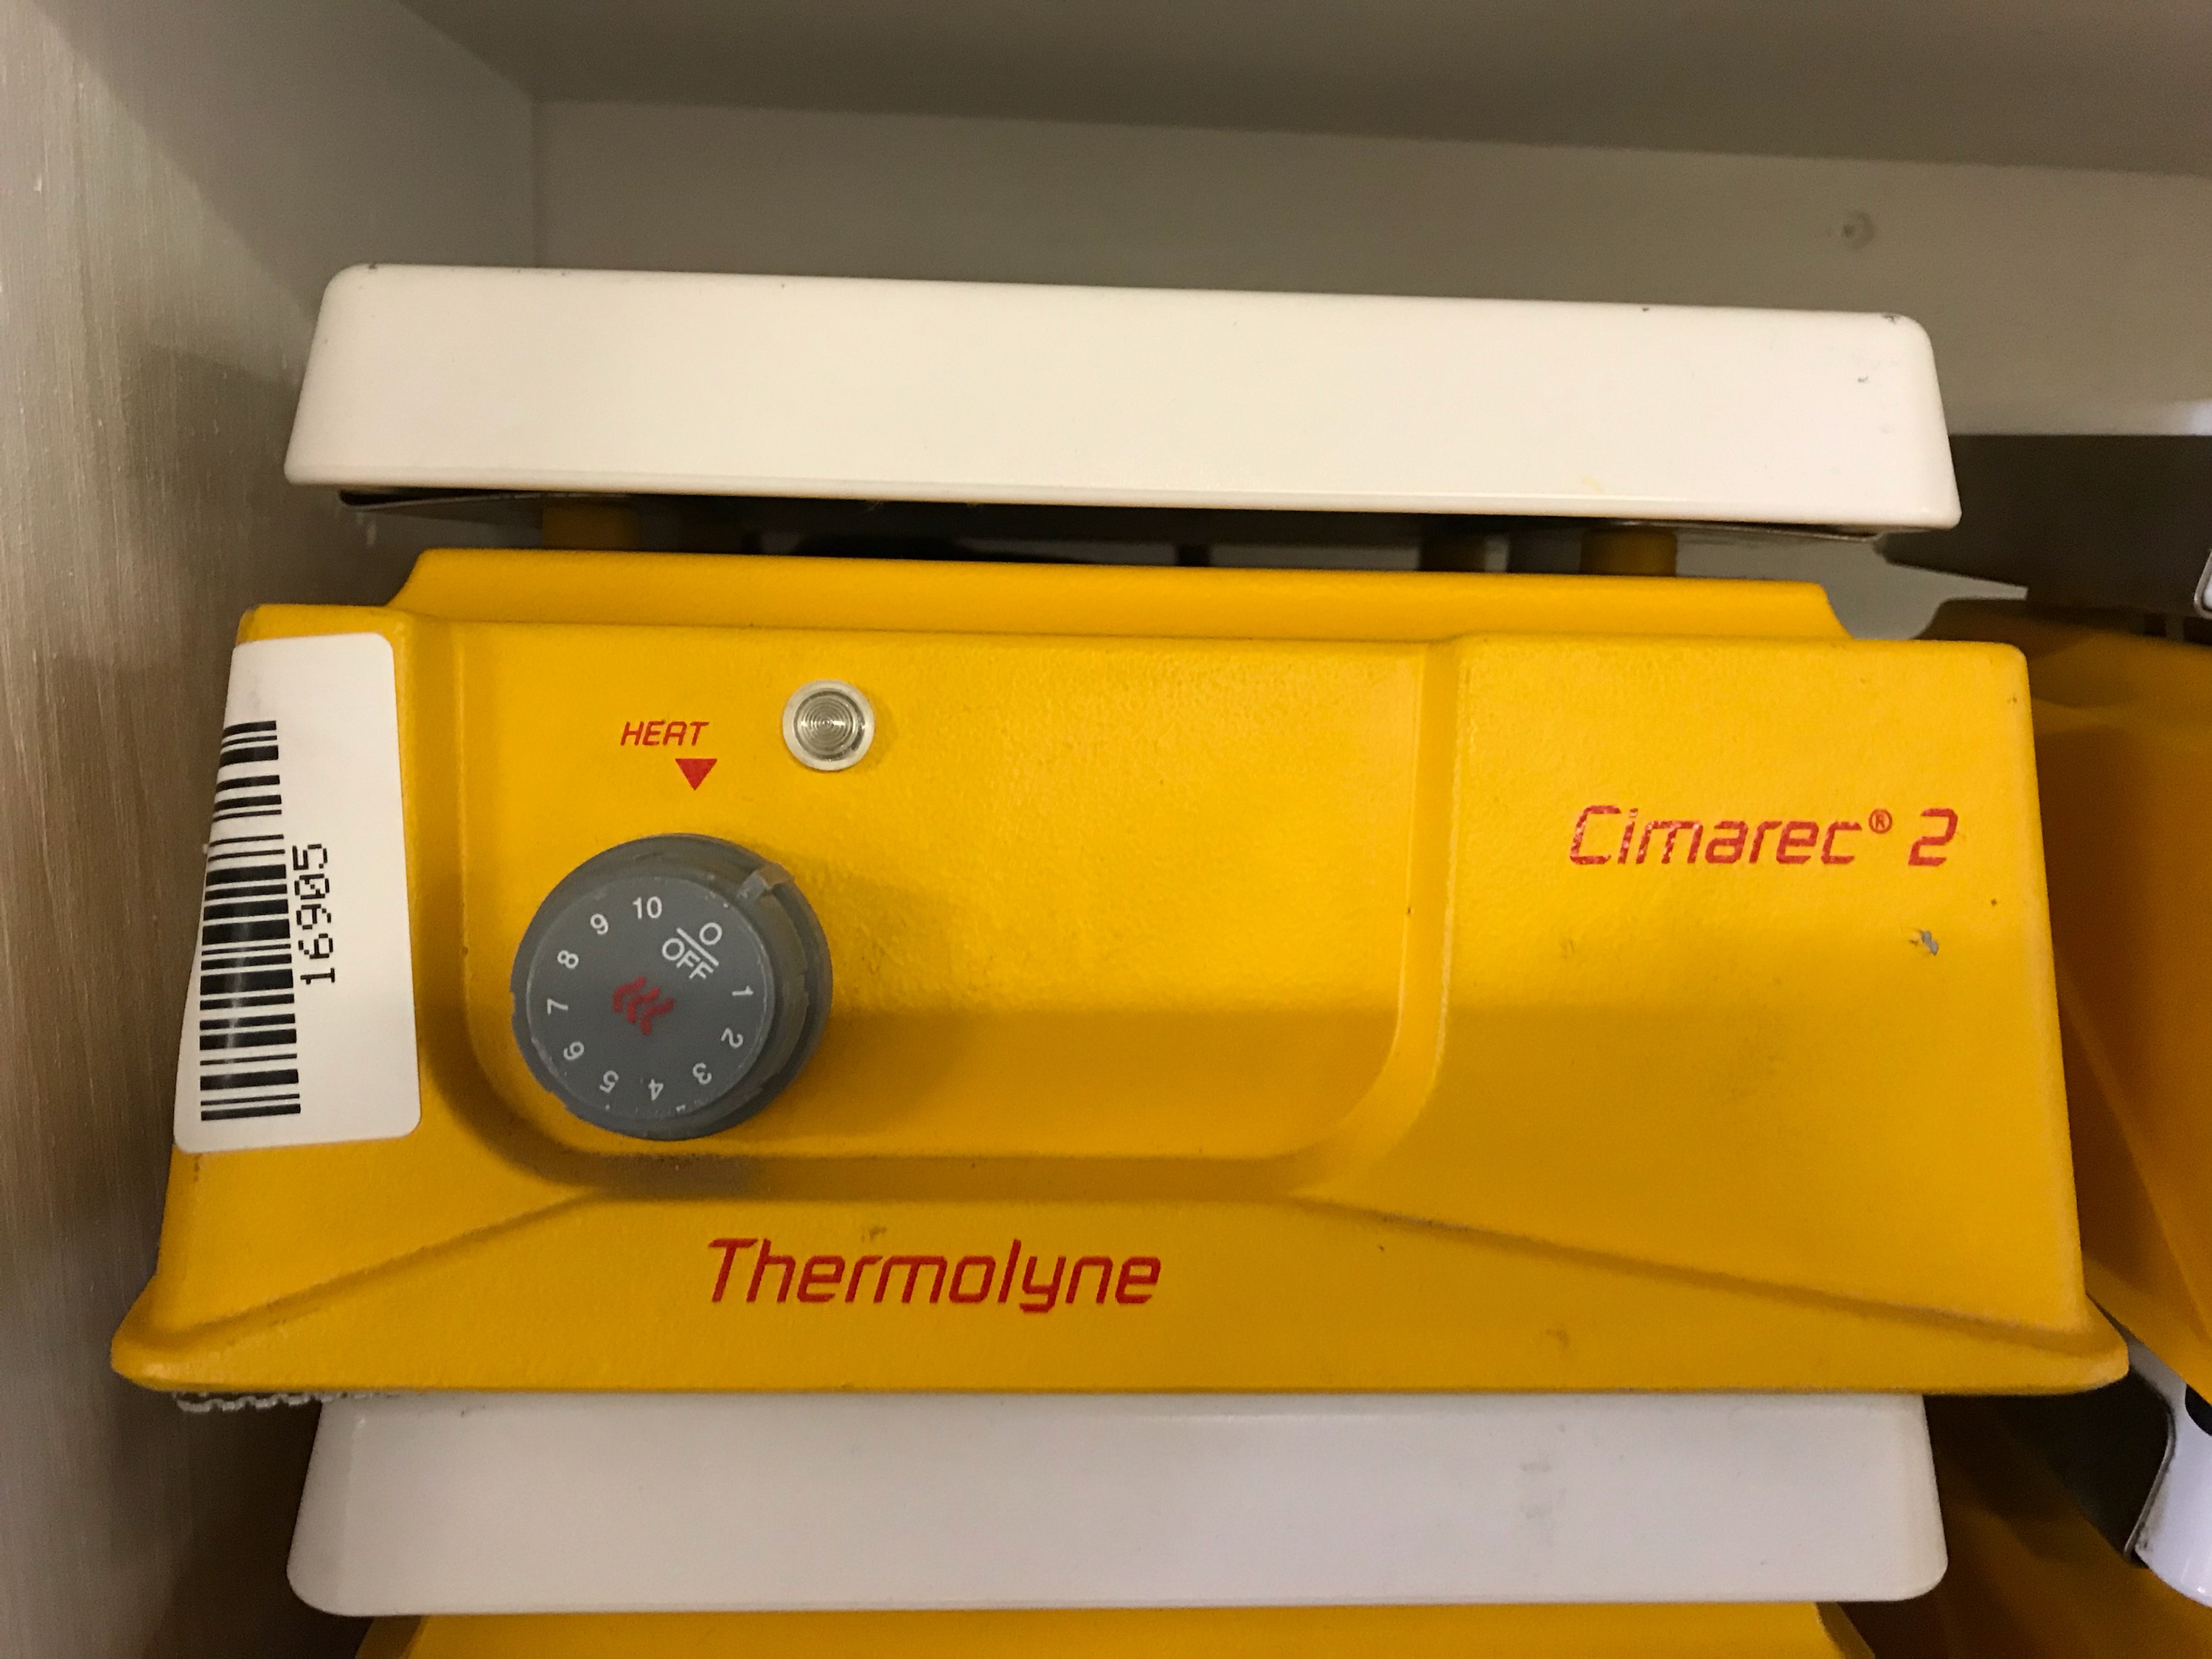 Thermolyne Cimarec 2 Hot Plate/Stirring Hot Plate